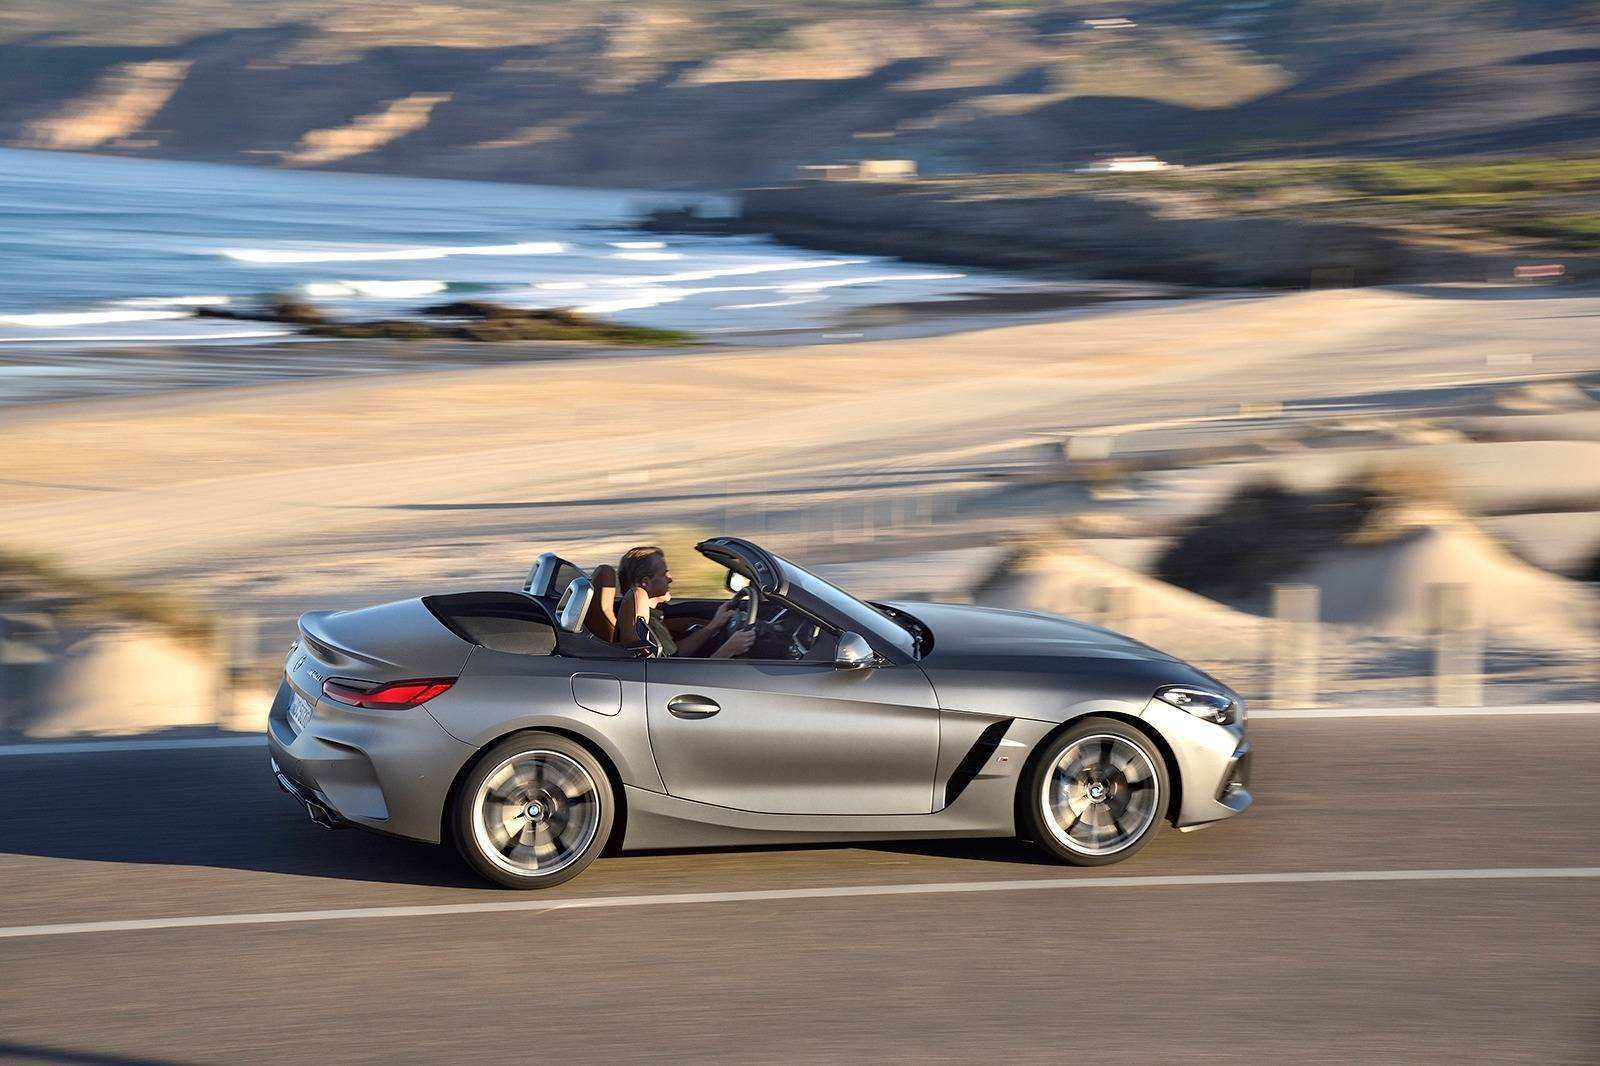 93 Great 2019 Bmw Roadster Speed Test by 2019 Bmw Roadster